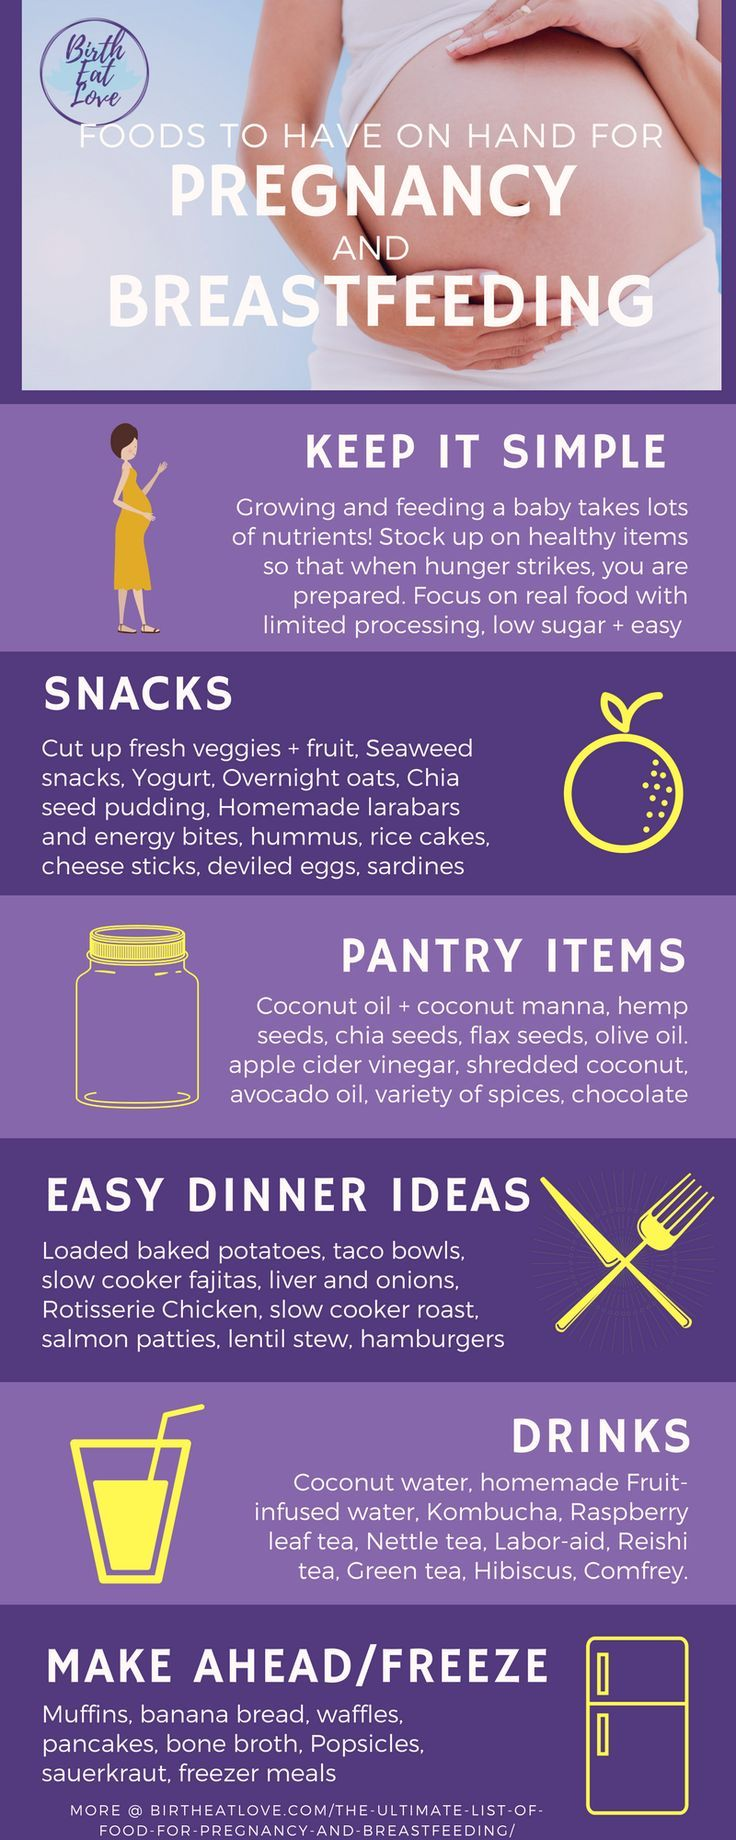 One of the most important, yet maybe most overlooked, areas of childbirth preparation is getting your fridge and pantry stocked with healthy foods to eat in the days leading up to birth, during labor and after baby arrives. Use this list of the best foods to eat during pregnancy and breastfeeding for ideas and recipe inspiration. Clean, real food ideas, low sugar and mostly gluten free. Healthy pregnancy and successful breastfeeding depend on a good nutrient supply. Eat up!